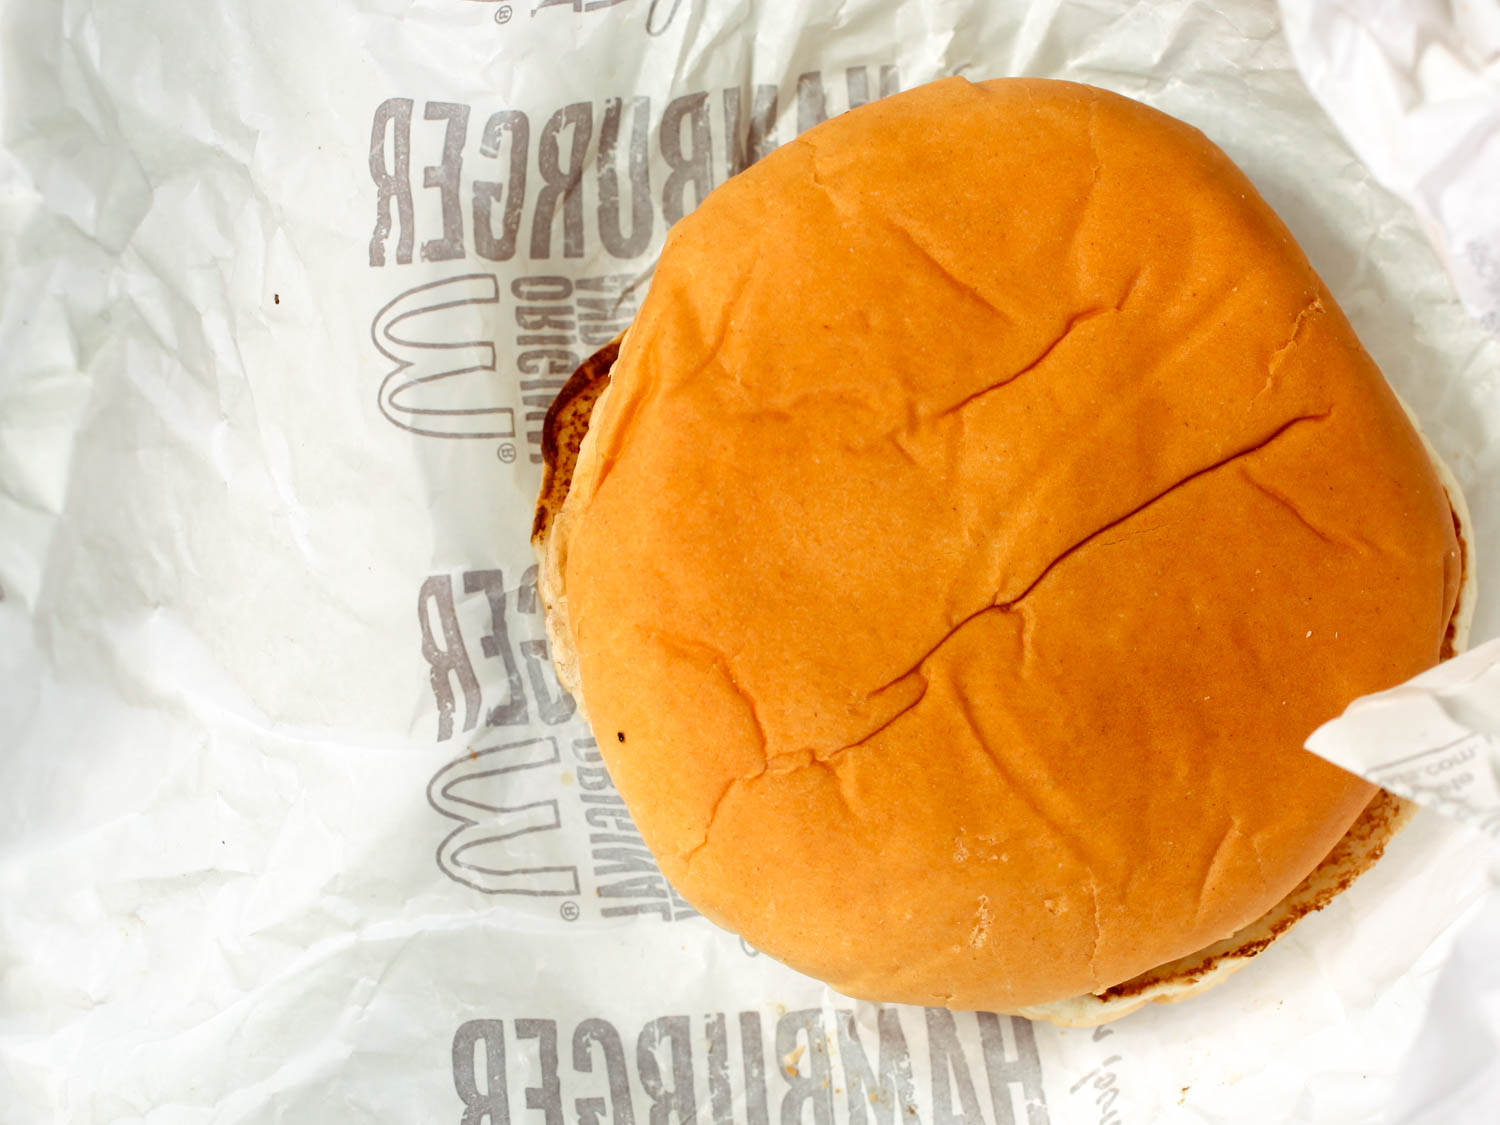 Here's Why McDonald's Burgers Don't Rot